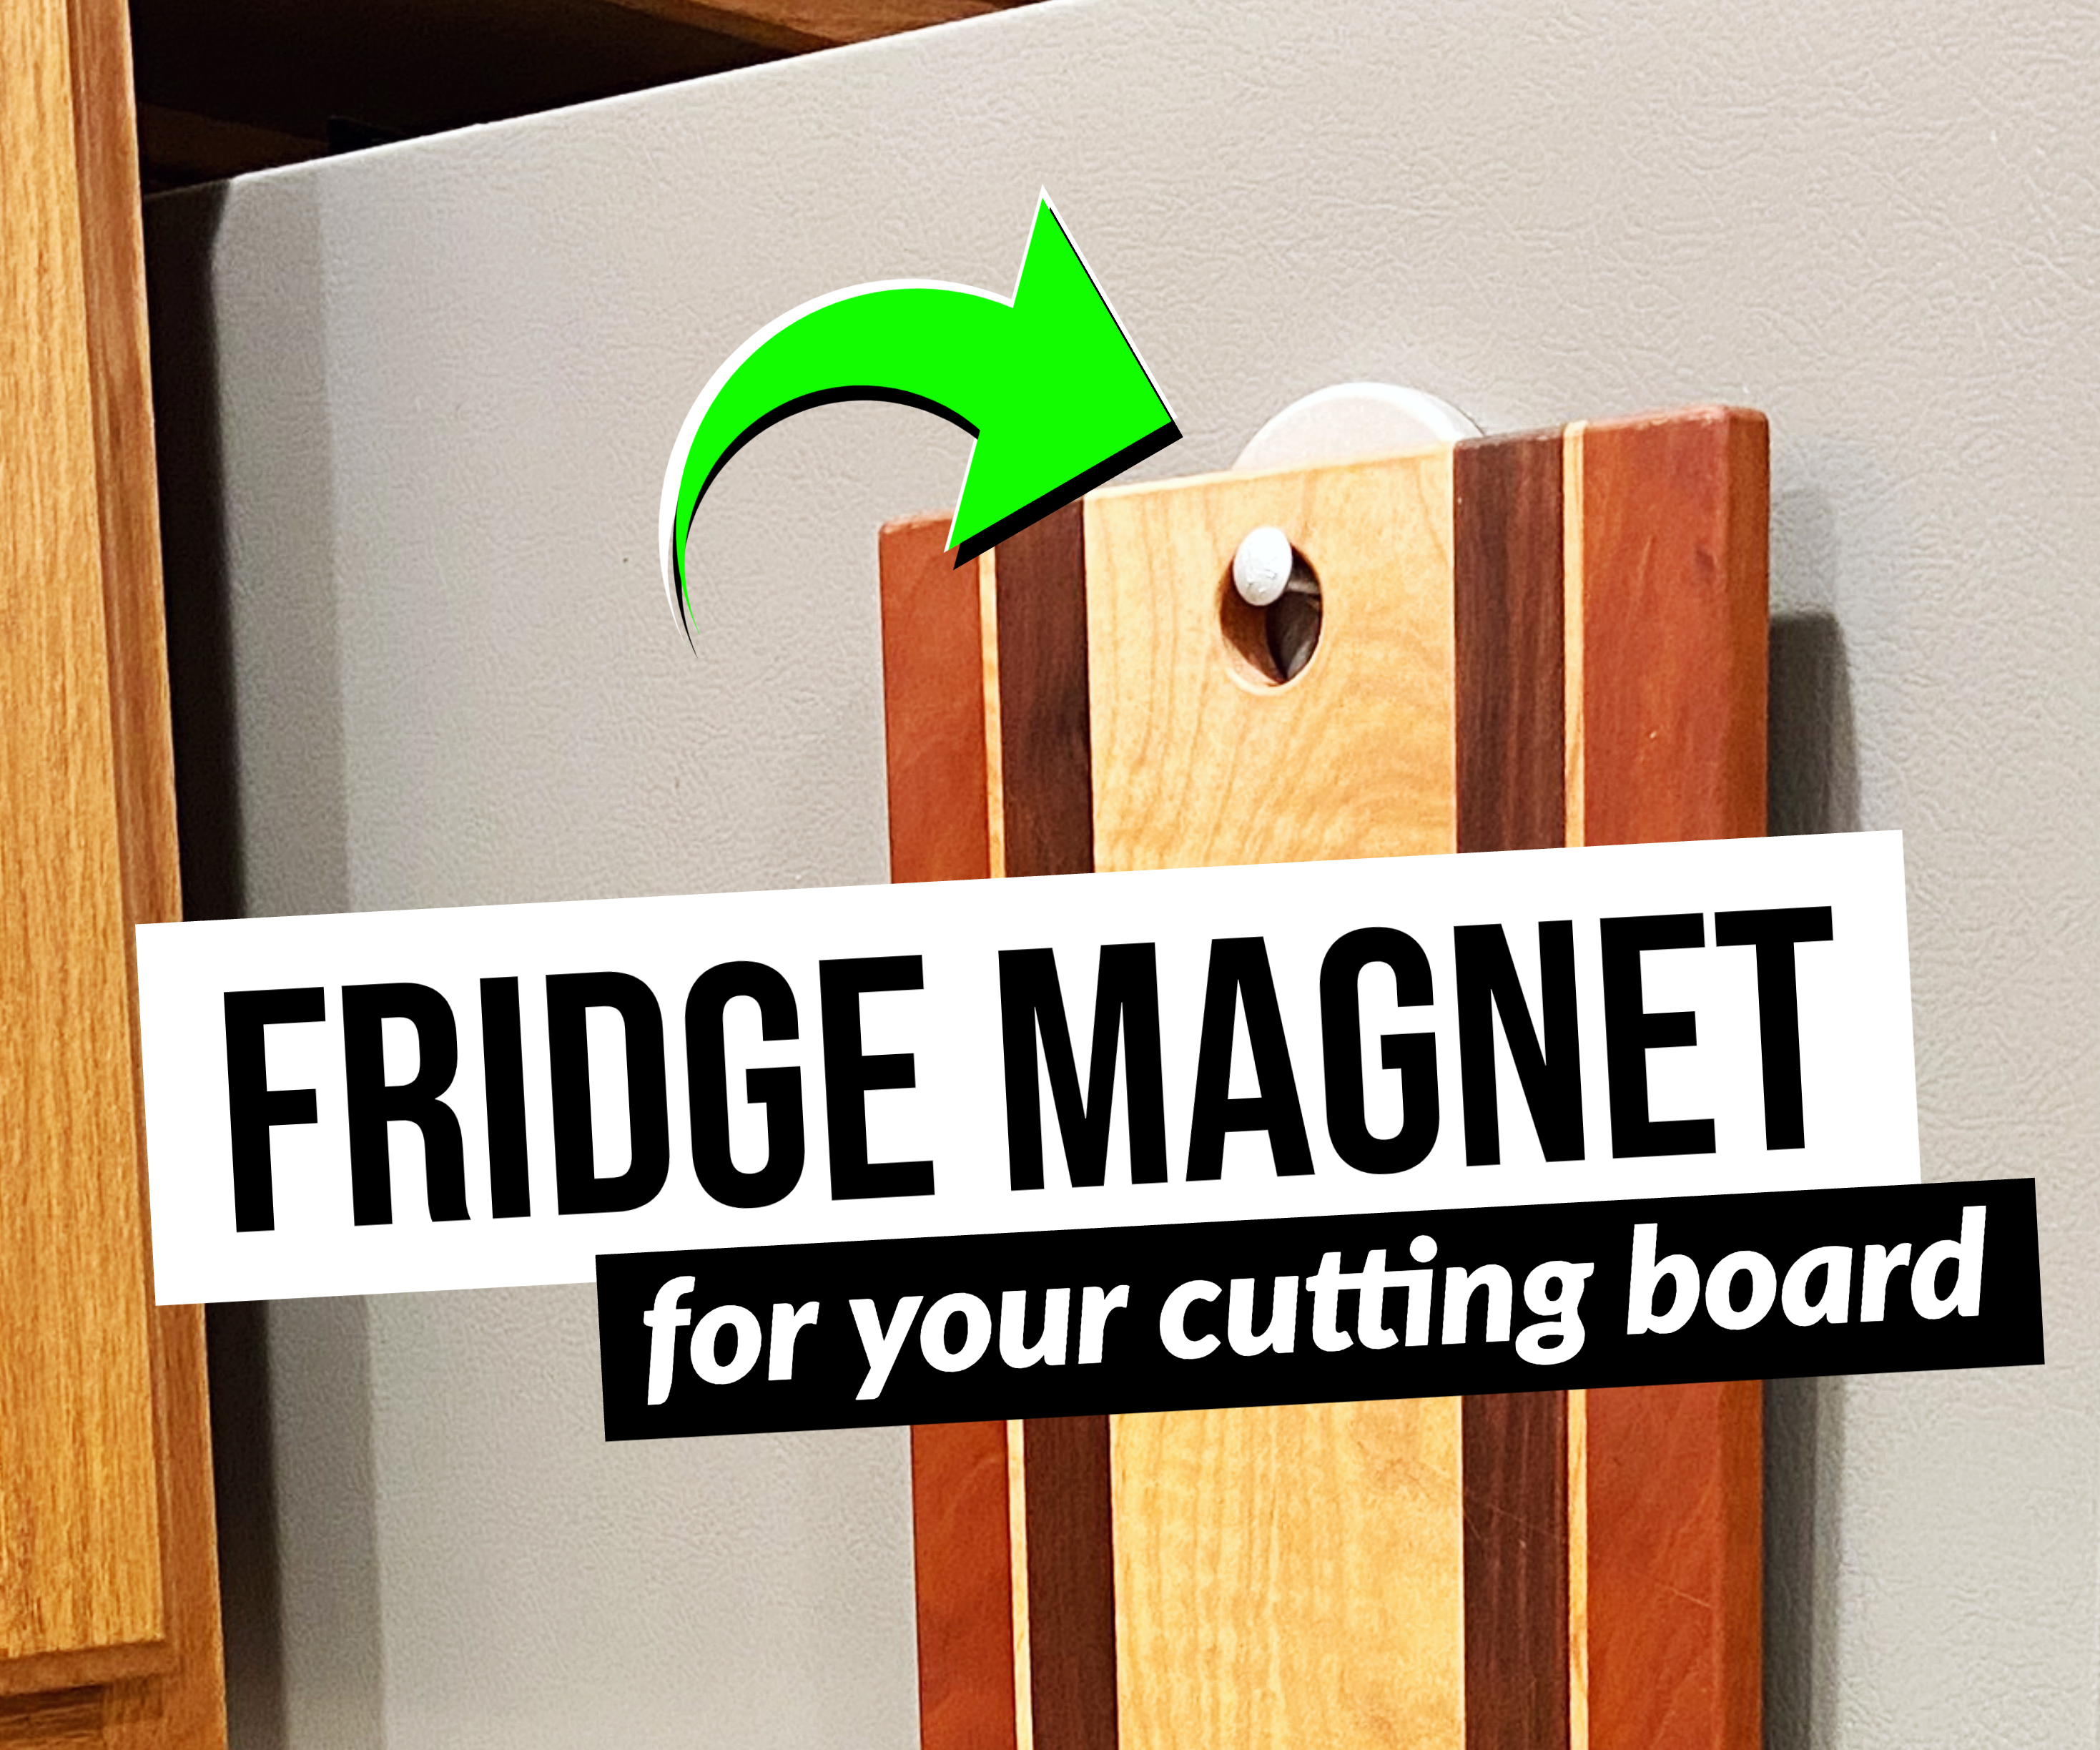 Fridge Magnet for Cutting Boards